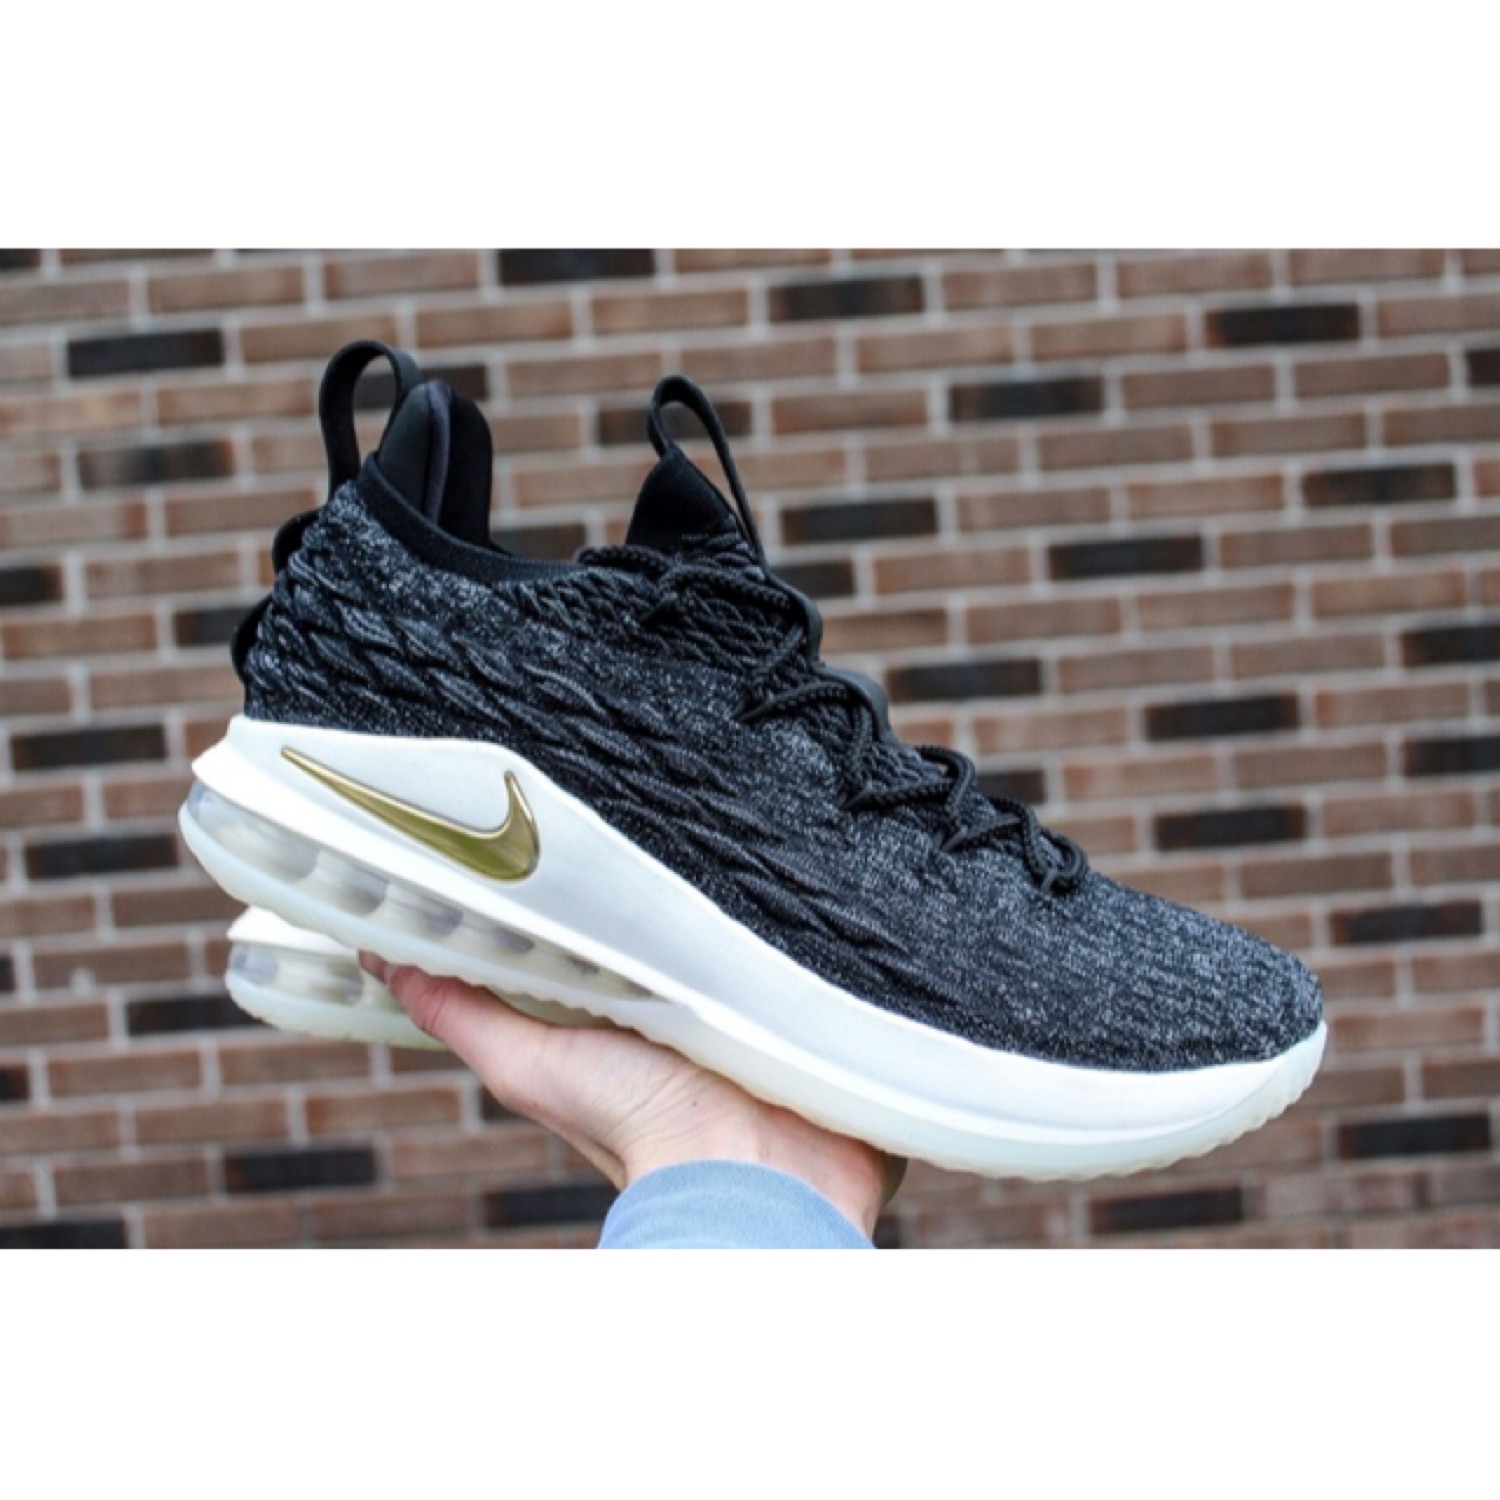 timeless design 276da b9530 Nike Lebron 15 Low Black Metallic Gold